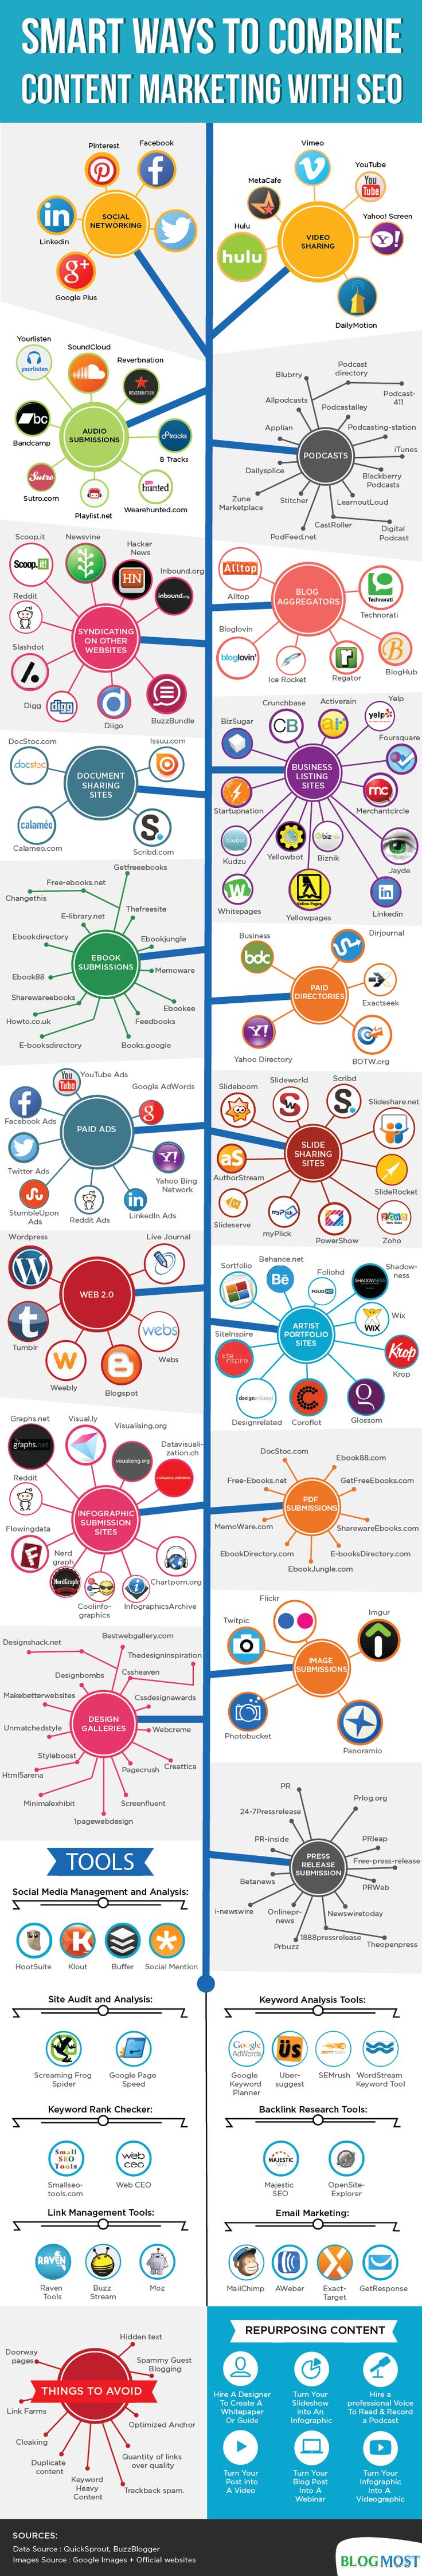 SEO Guide for Content Marketing #Infographic